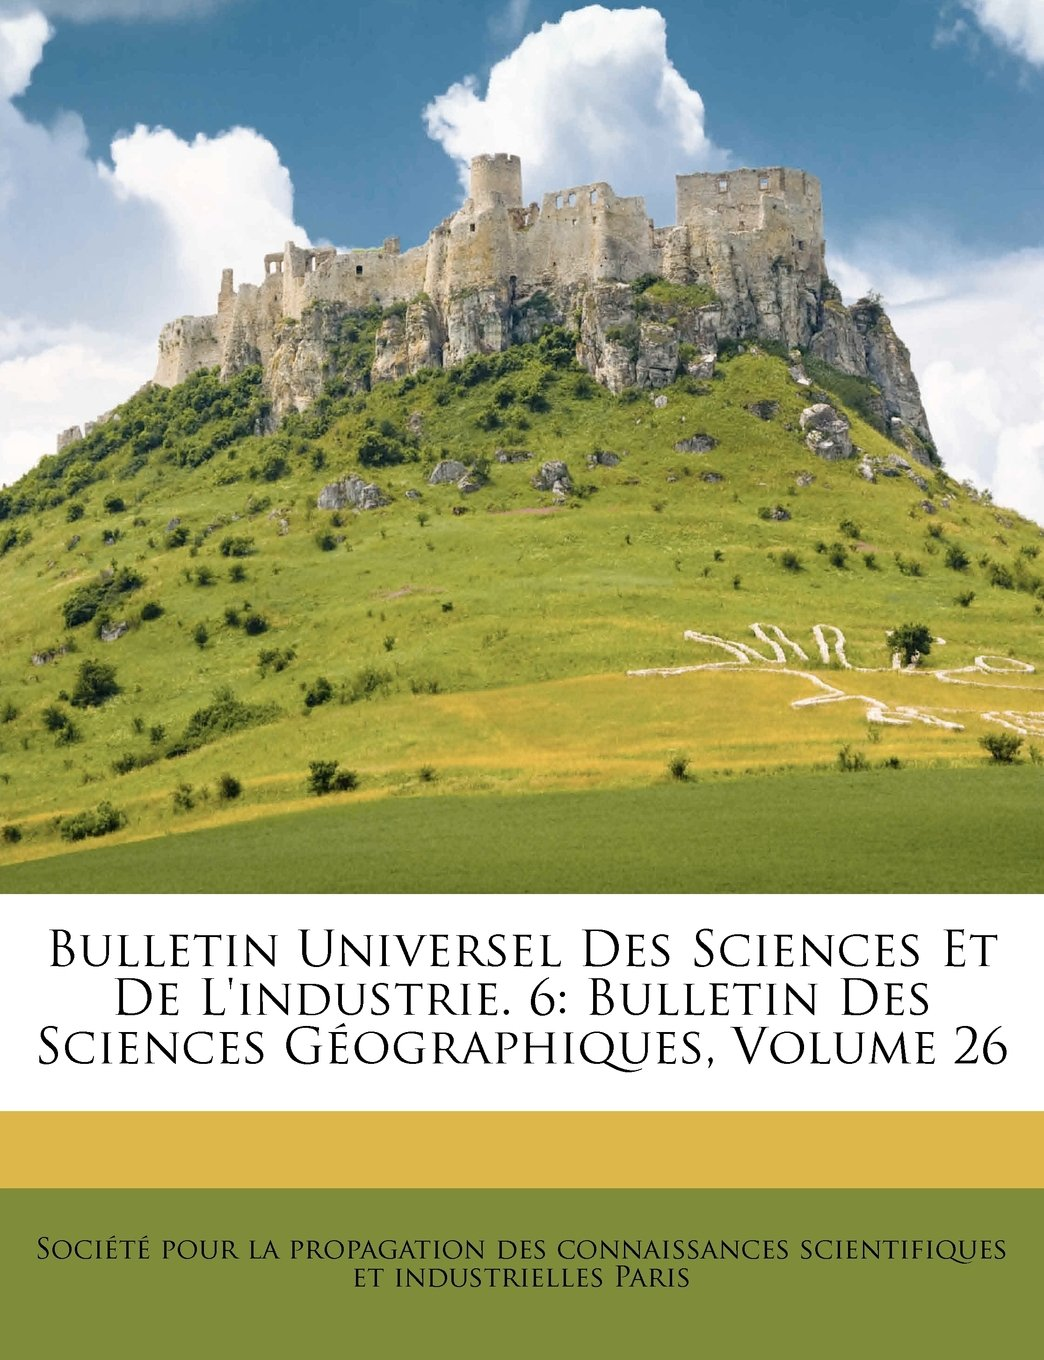 Download Bulletin Universel Des Sciences Et de L'Industrie. 6: Bulletin Des Sciences Geographiques, Volume 26 (French Edition) pdf epub